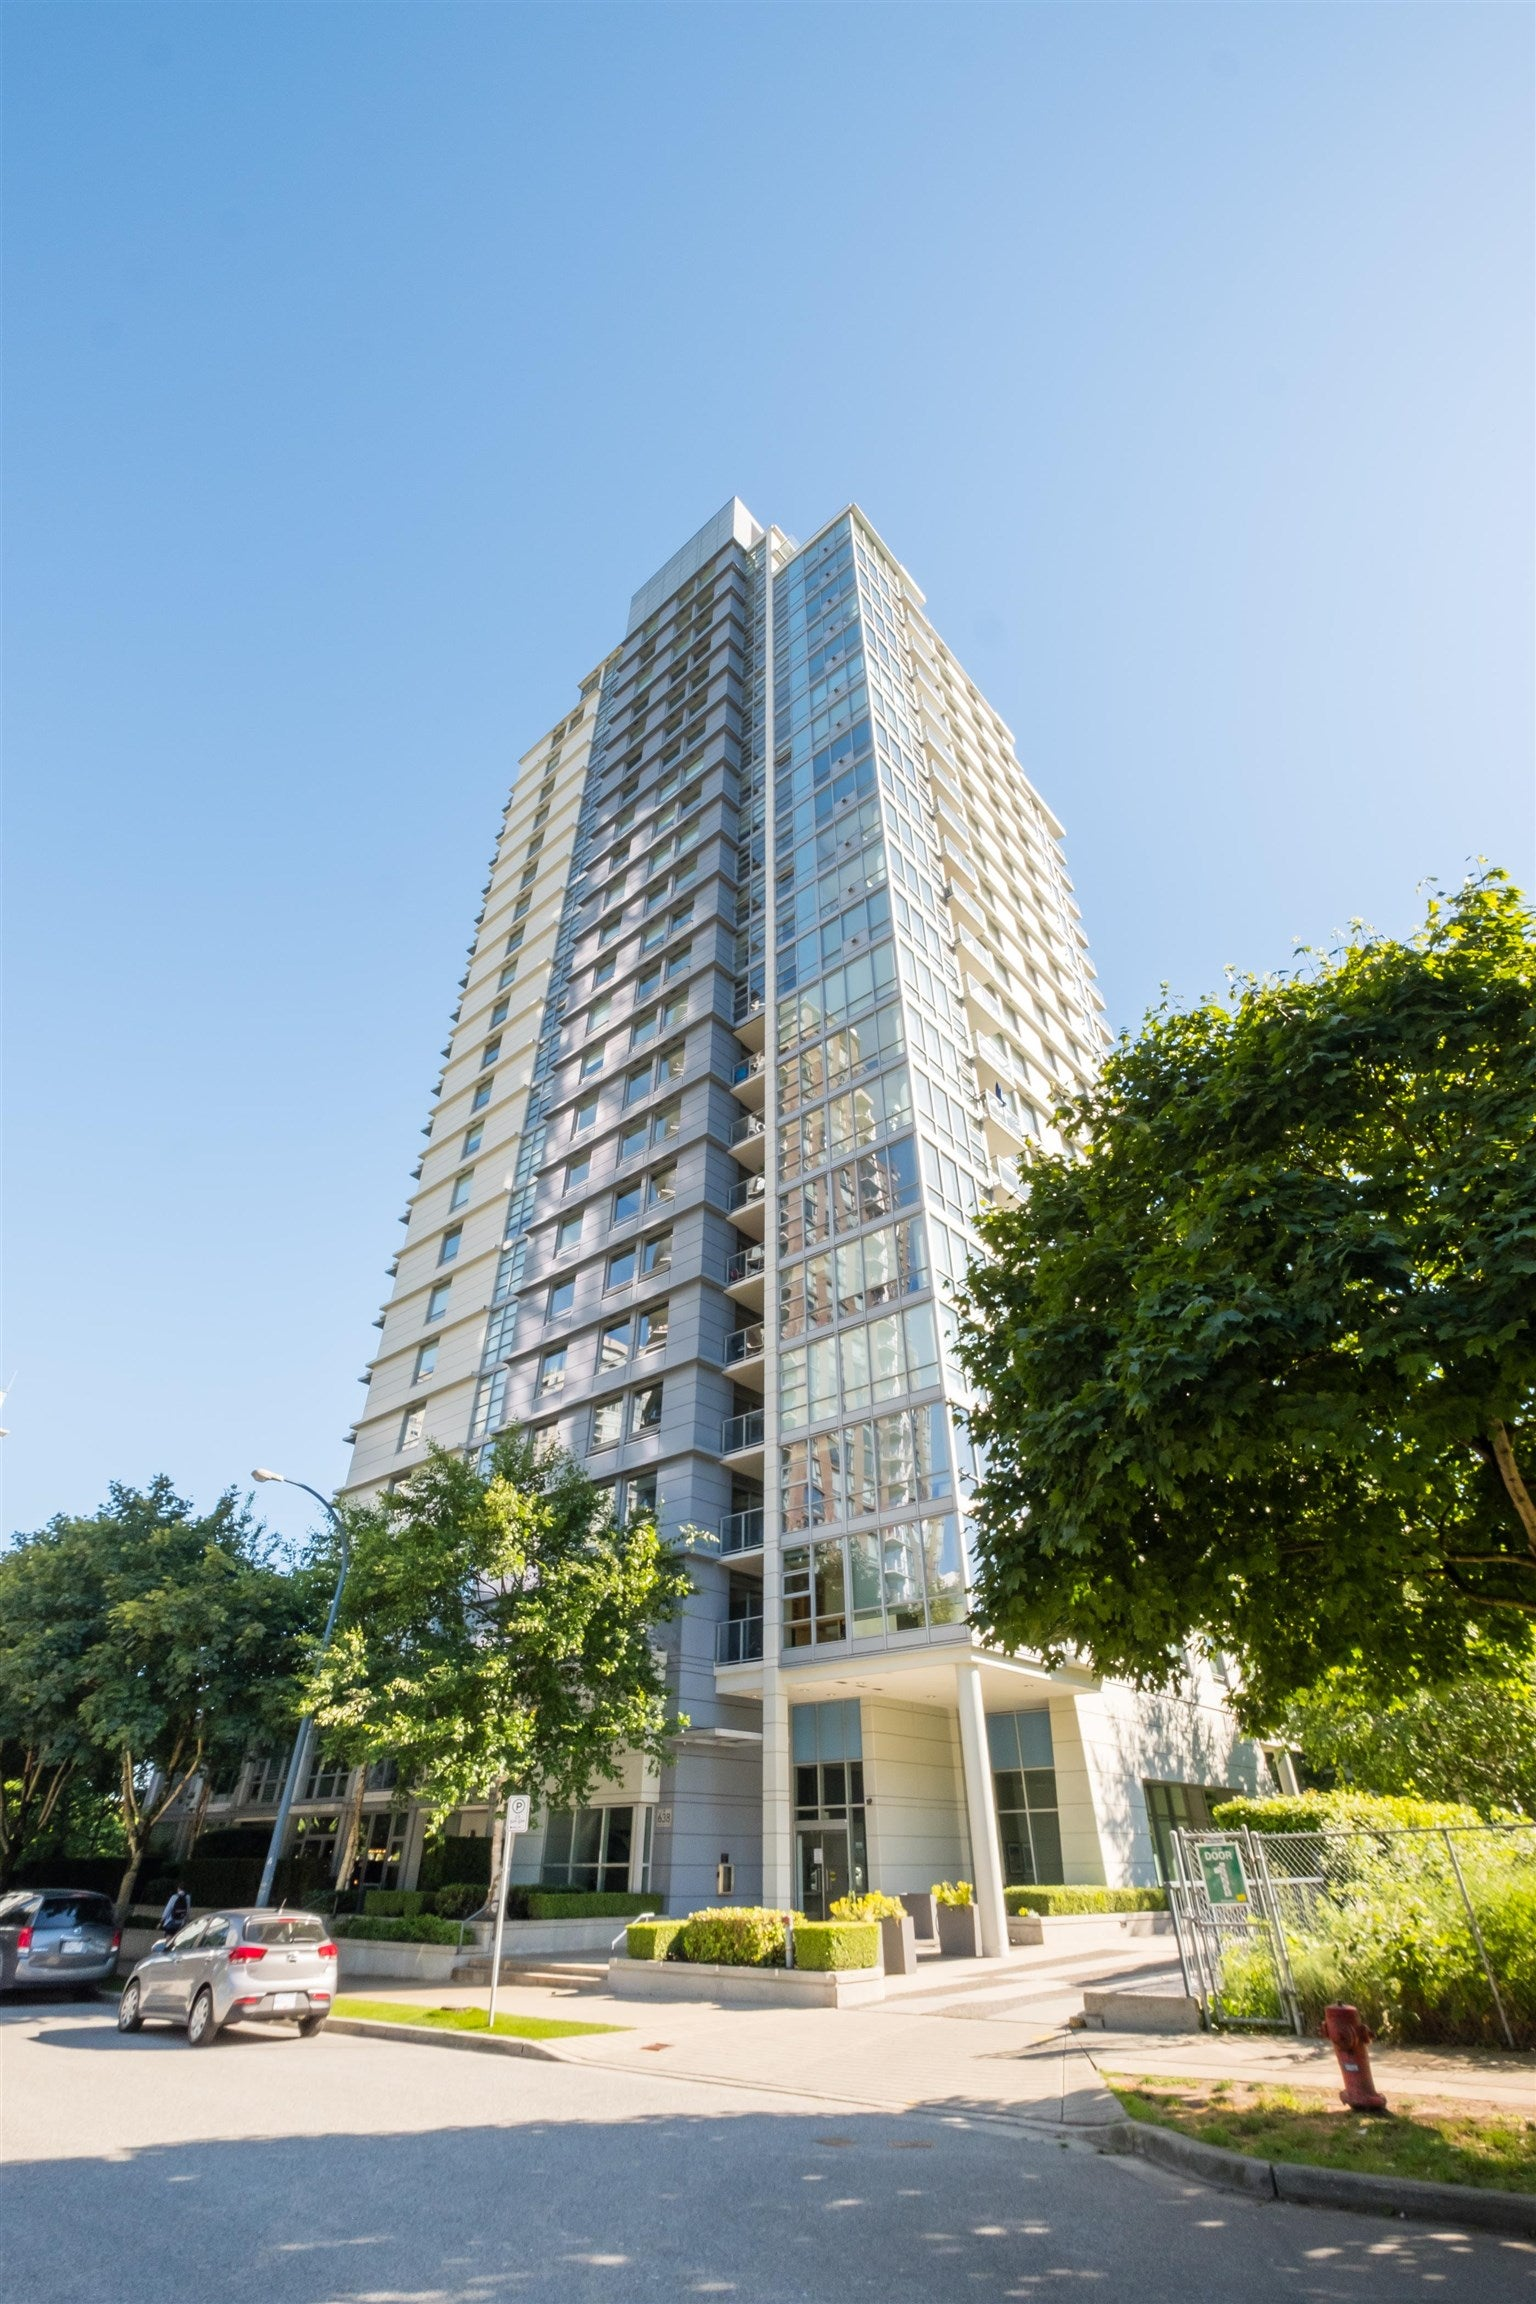 1805 638 BEACH CRESCENT - Yaletown Apartment/Condo for sale, 2 Bedrooms (R2614596) - #1